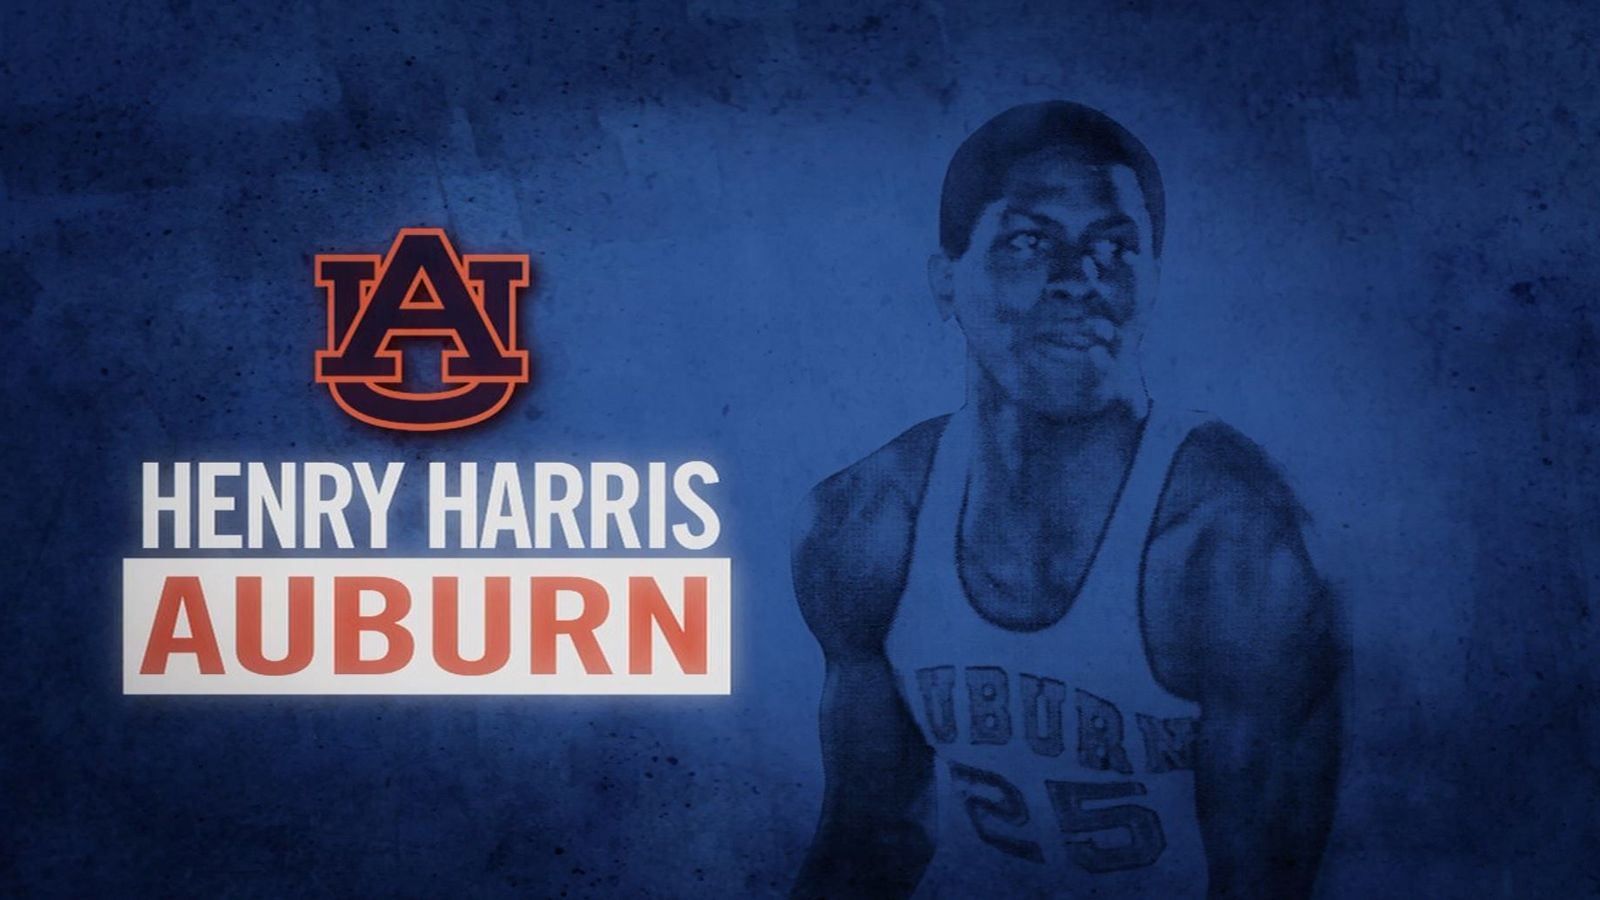 SEC celebrates Black History Month: Auburn